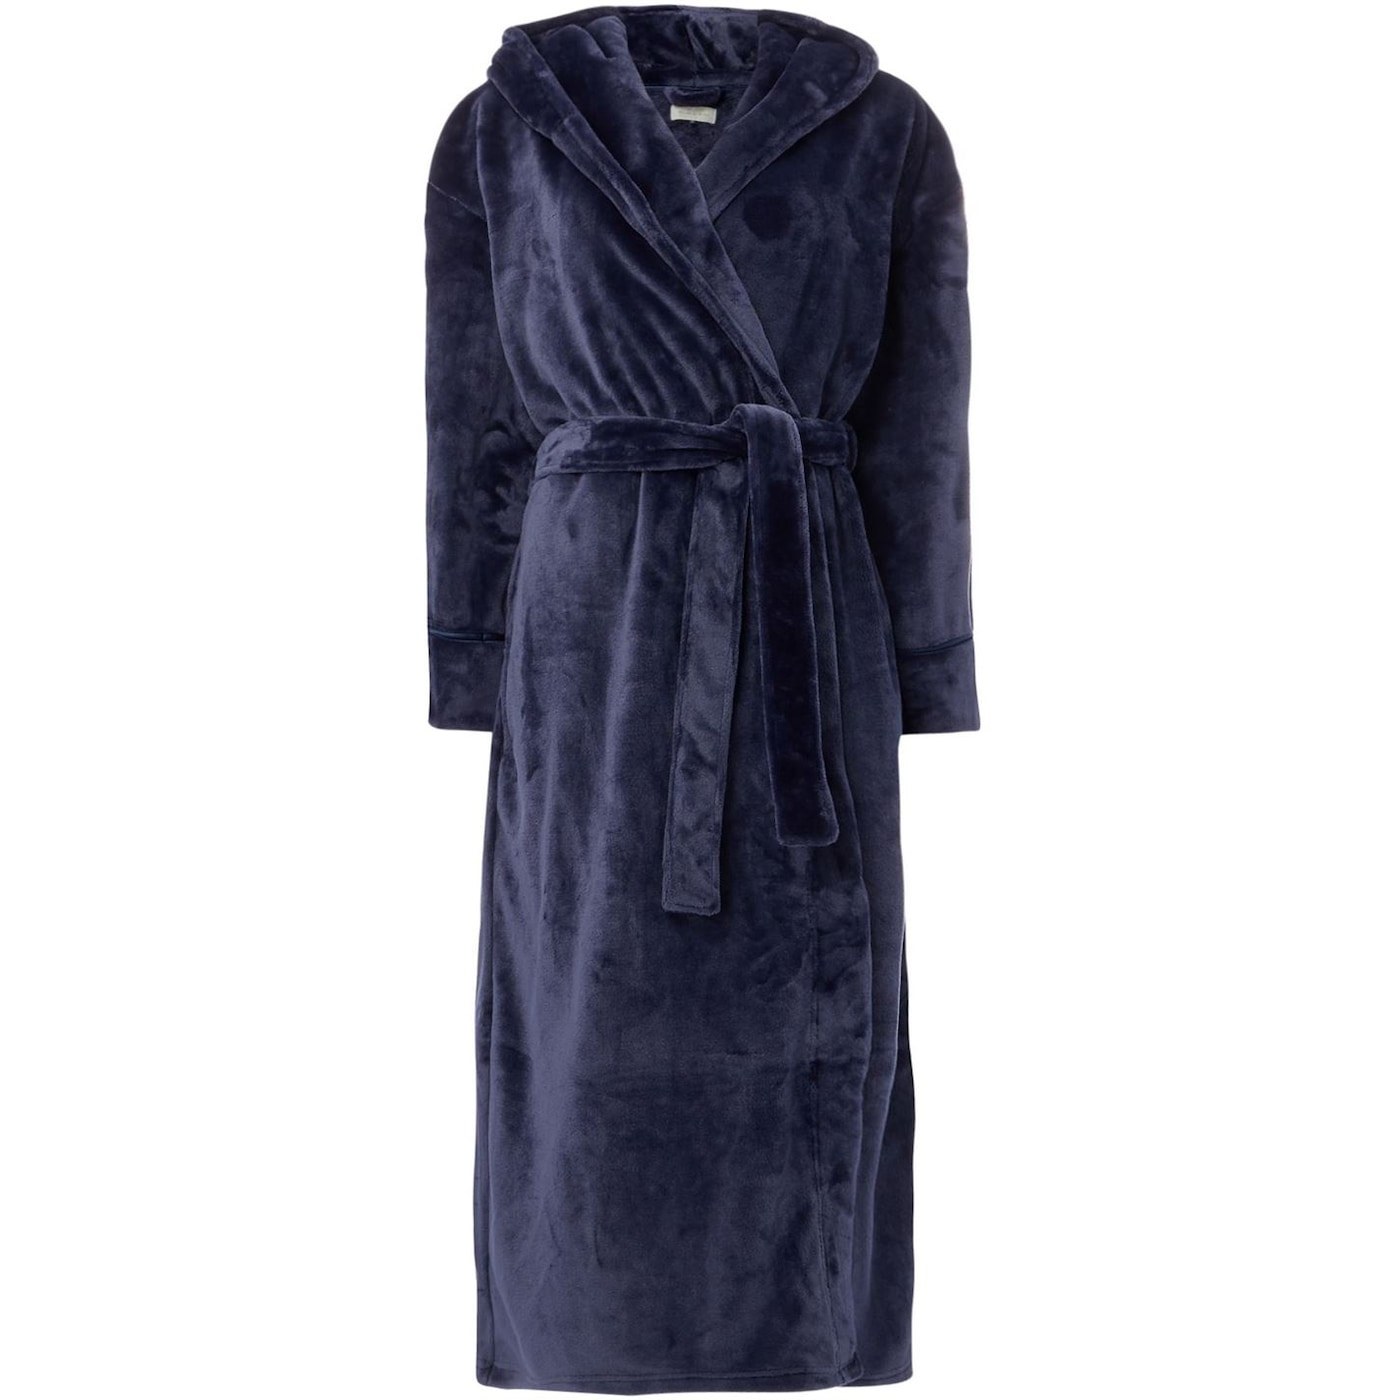 Maison De Nimes Supersoft robe